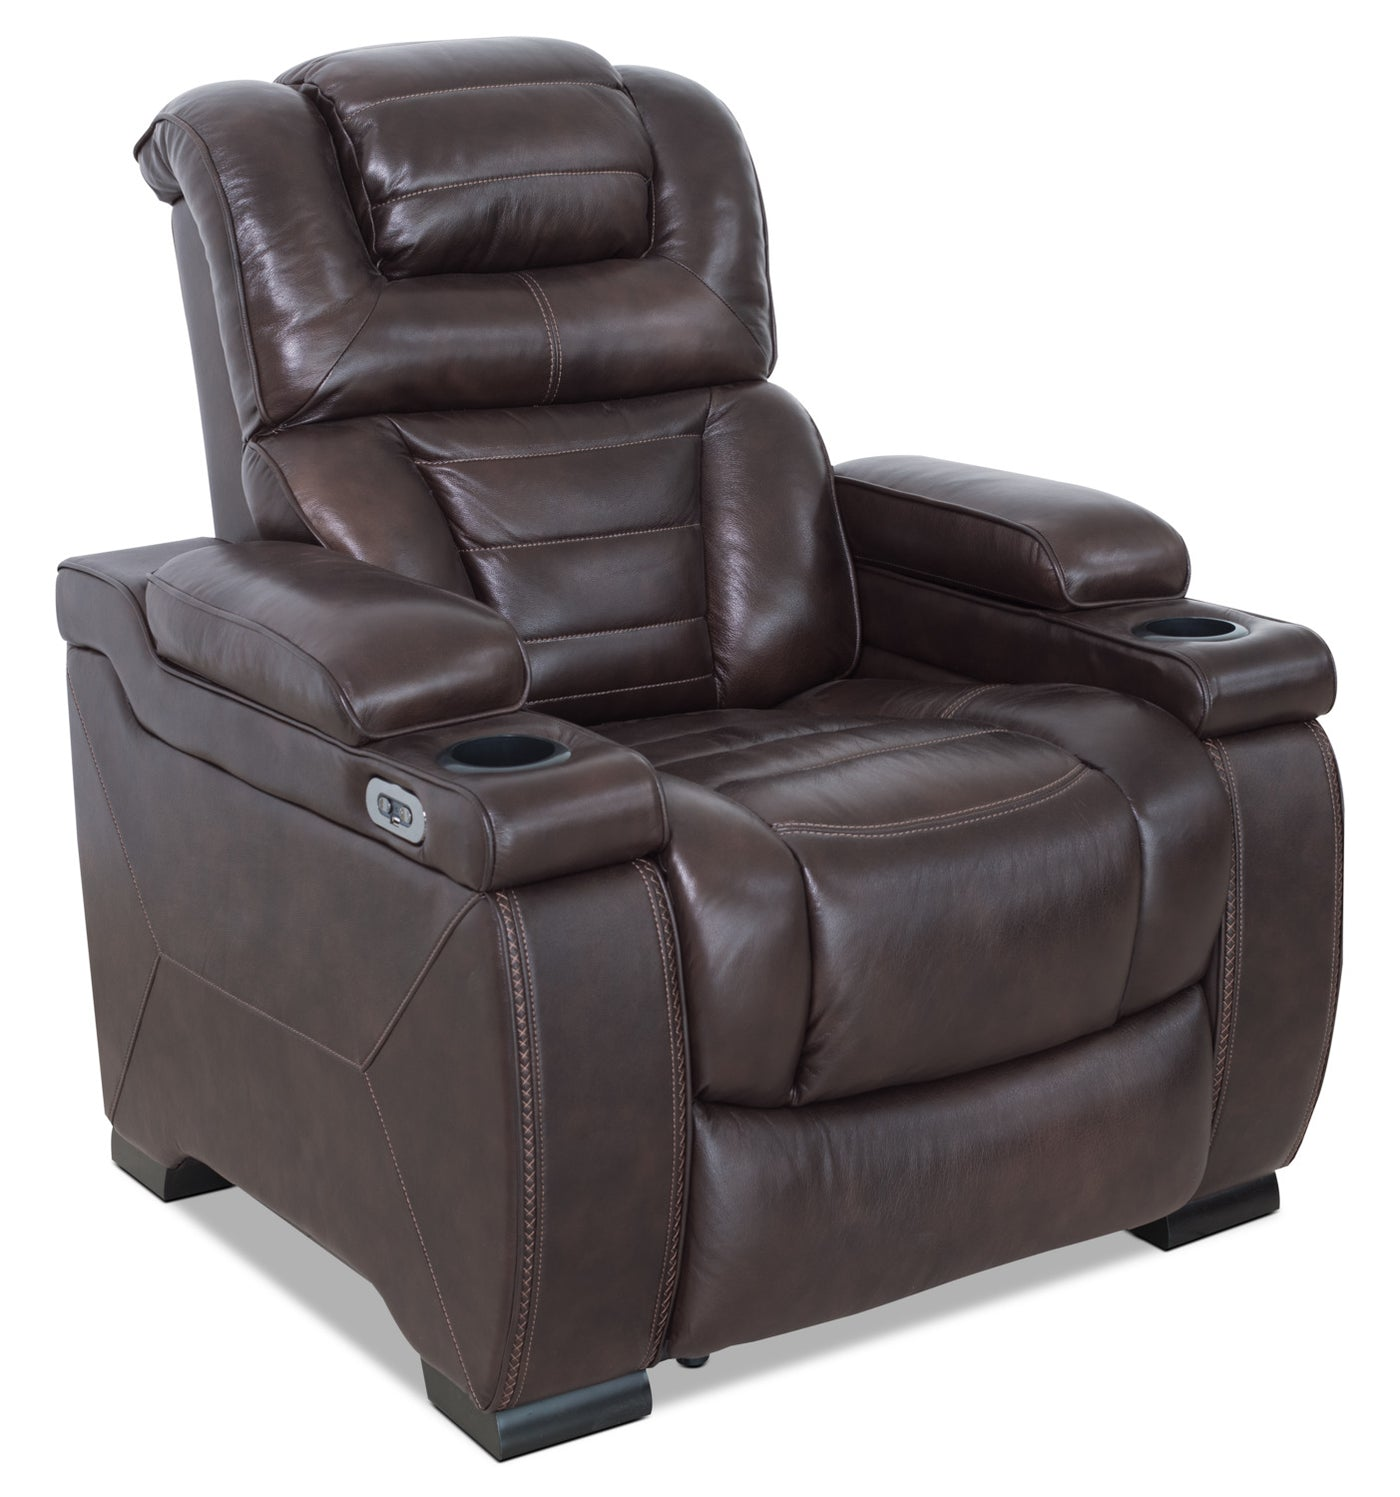 Pleasant Hugo Genuine Leather Power Reclining Chair Brown Caraccident5 Cool Chair Designs And Ideas Caraccident5Info